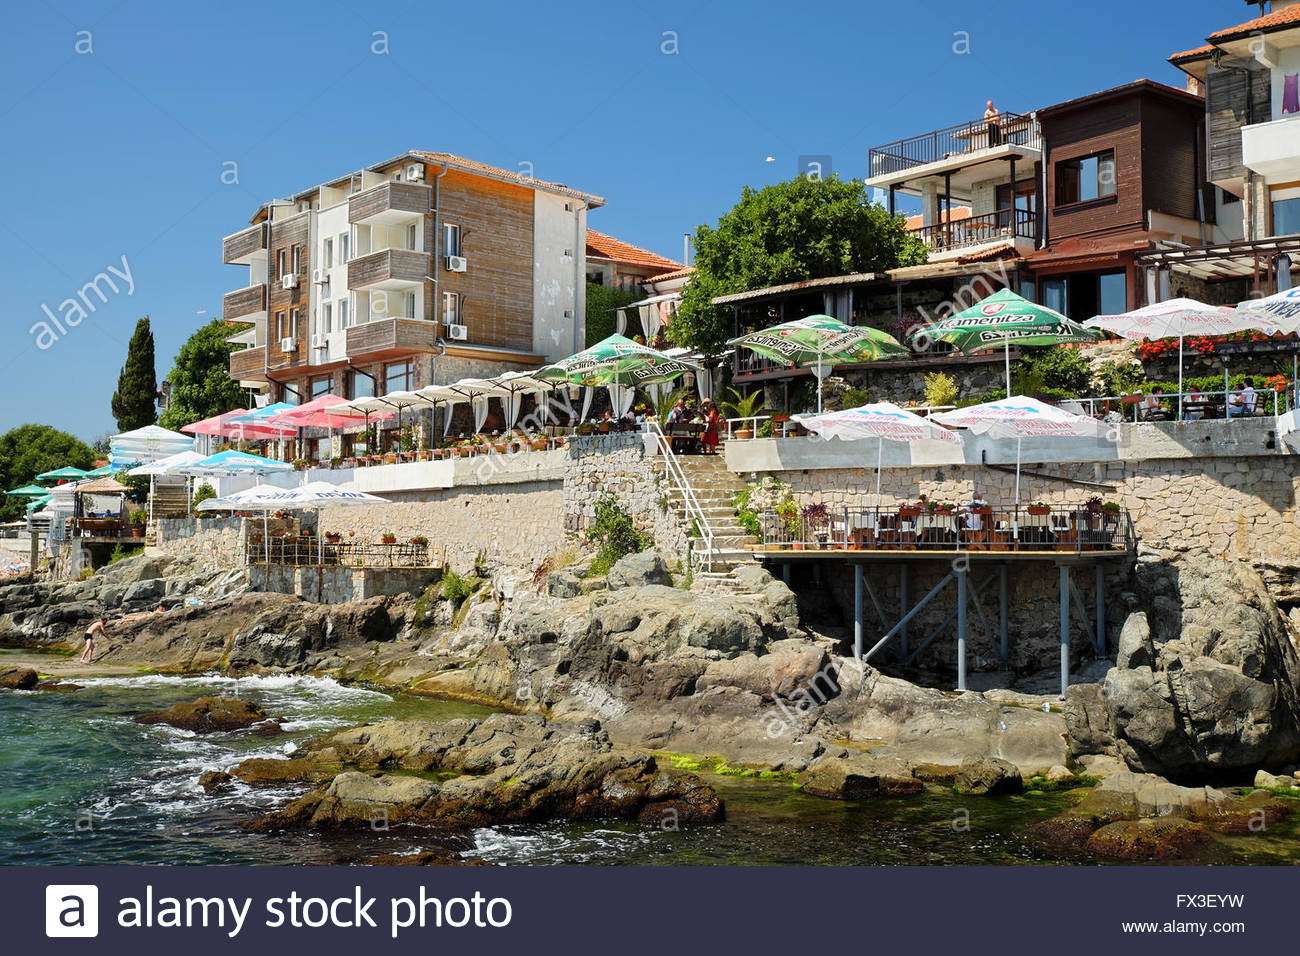 Sozopol Old Town Bulgaria, SOZOPOL, BULGARIA - JULY 19: Seaside hotels and restaurants on ...